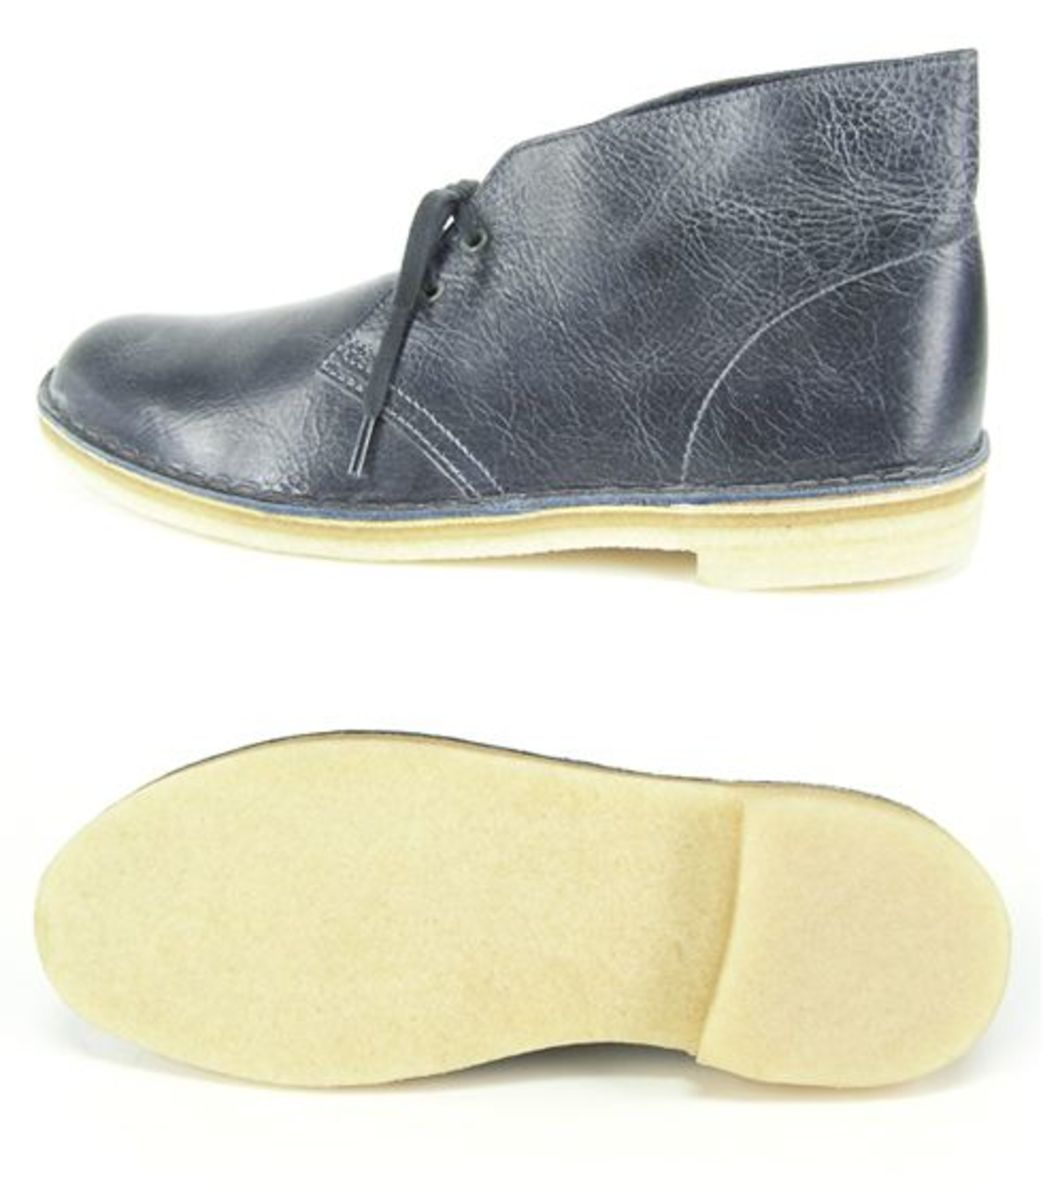 ZOZO x SHIPS x Clarks - Desert Boots Limited Edition